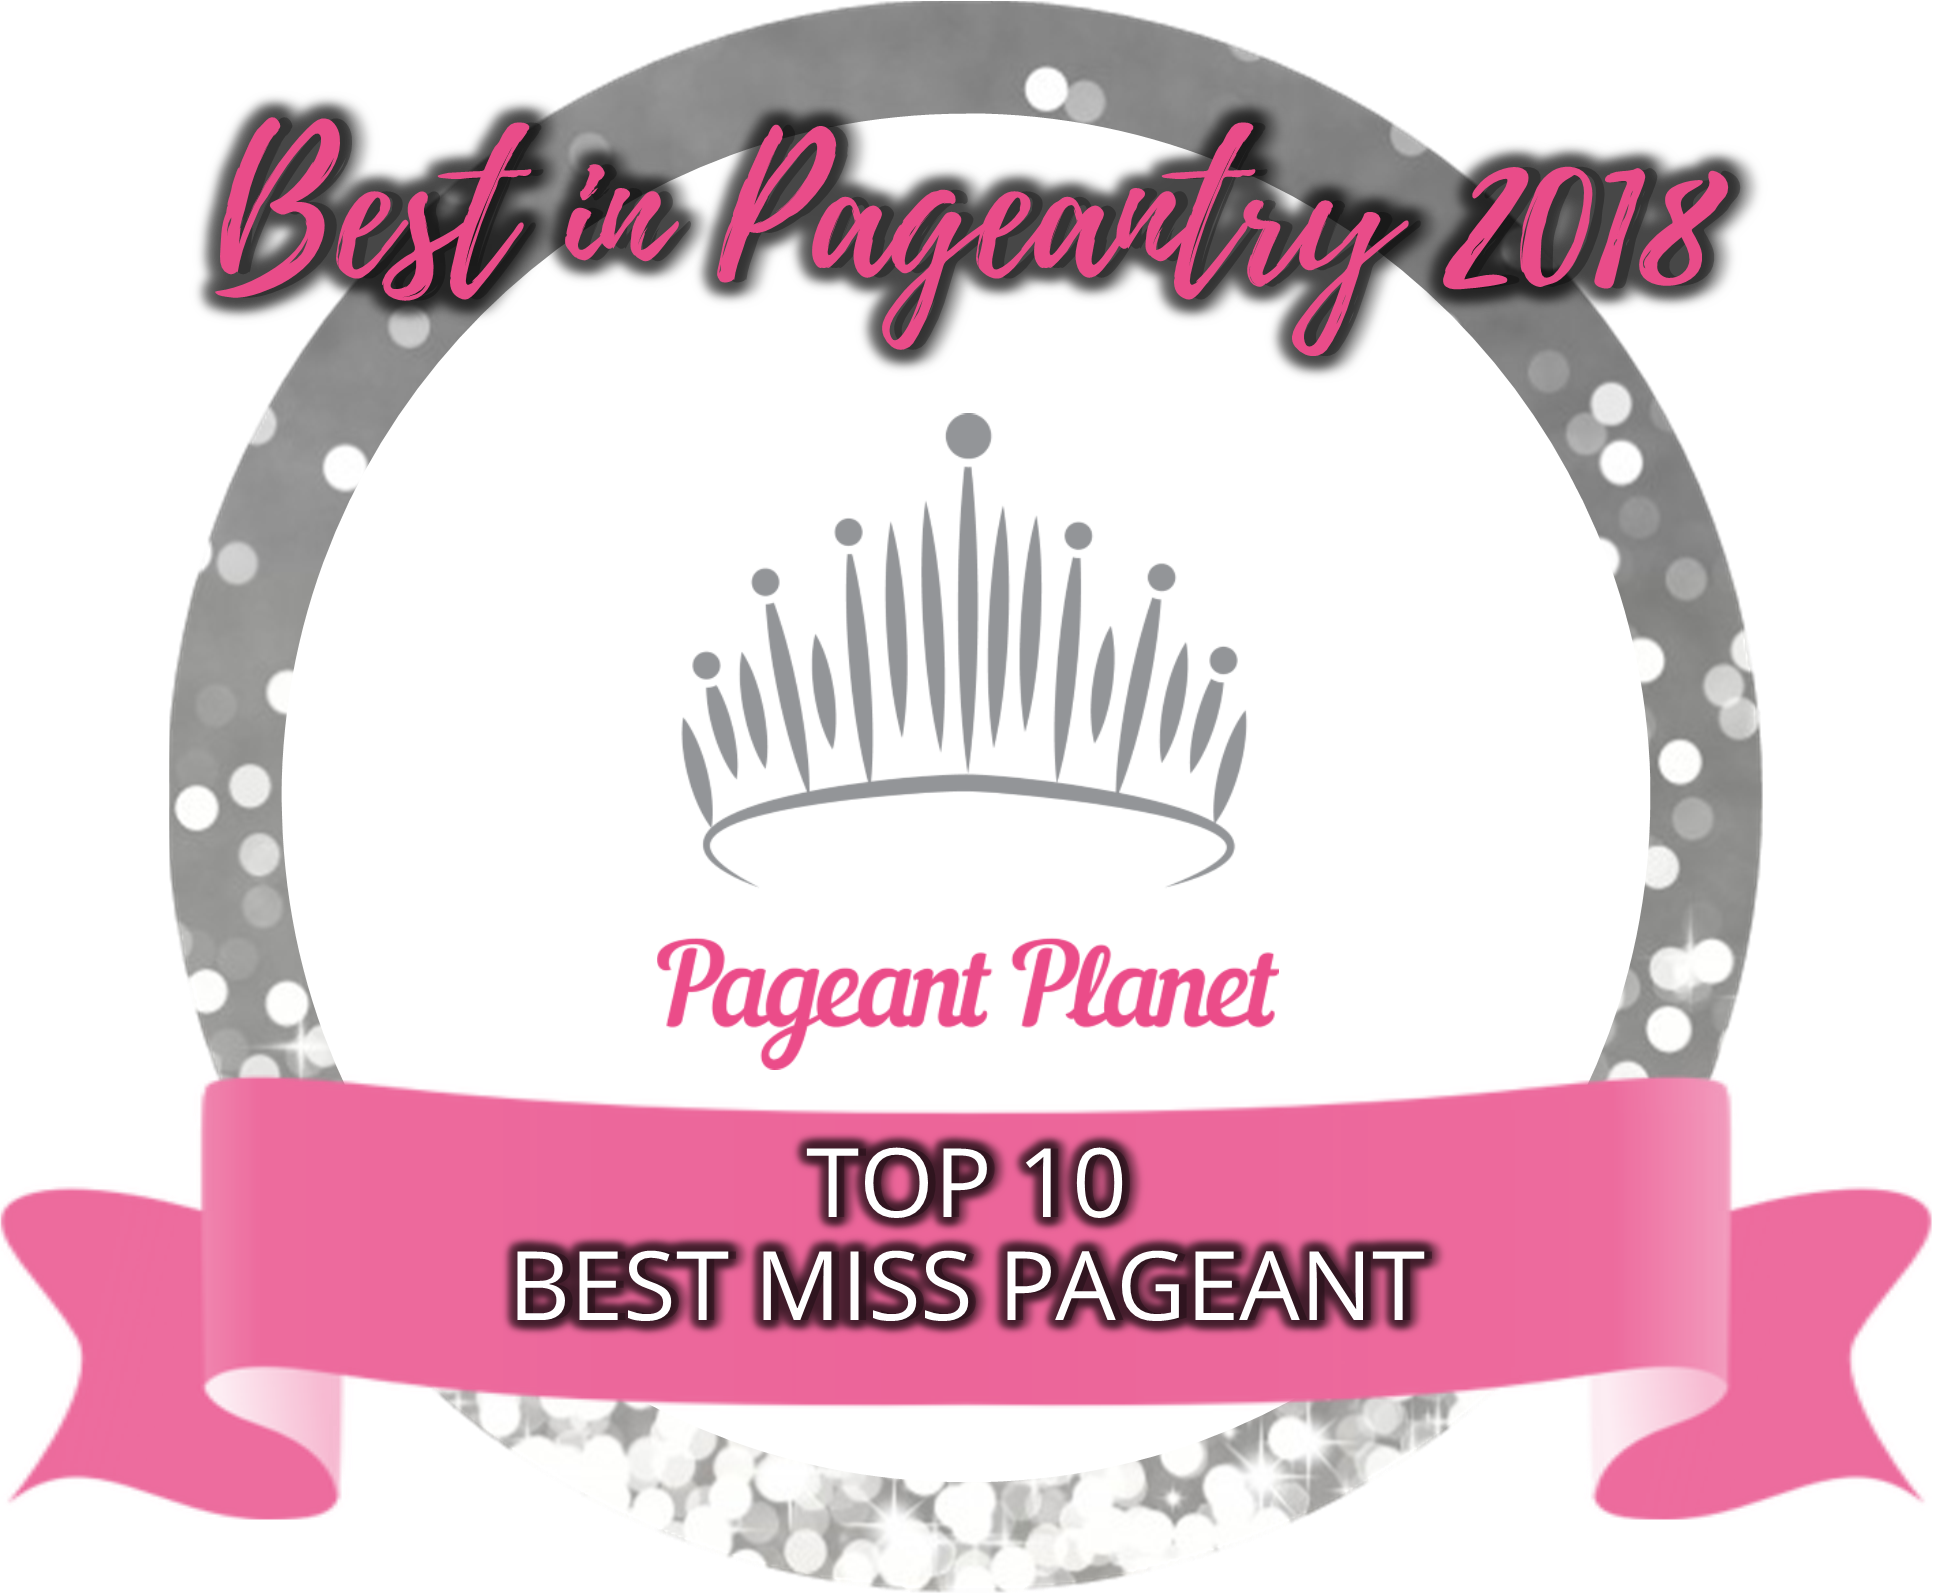 Top 10 Best Miss Pageant of 2018